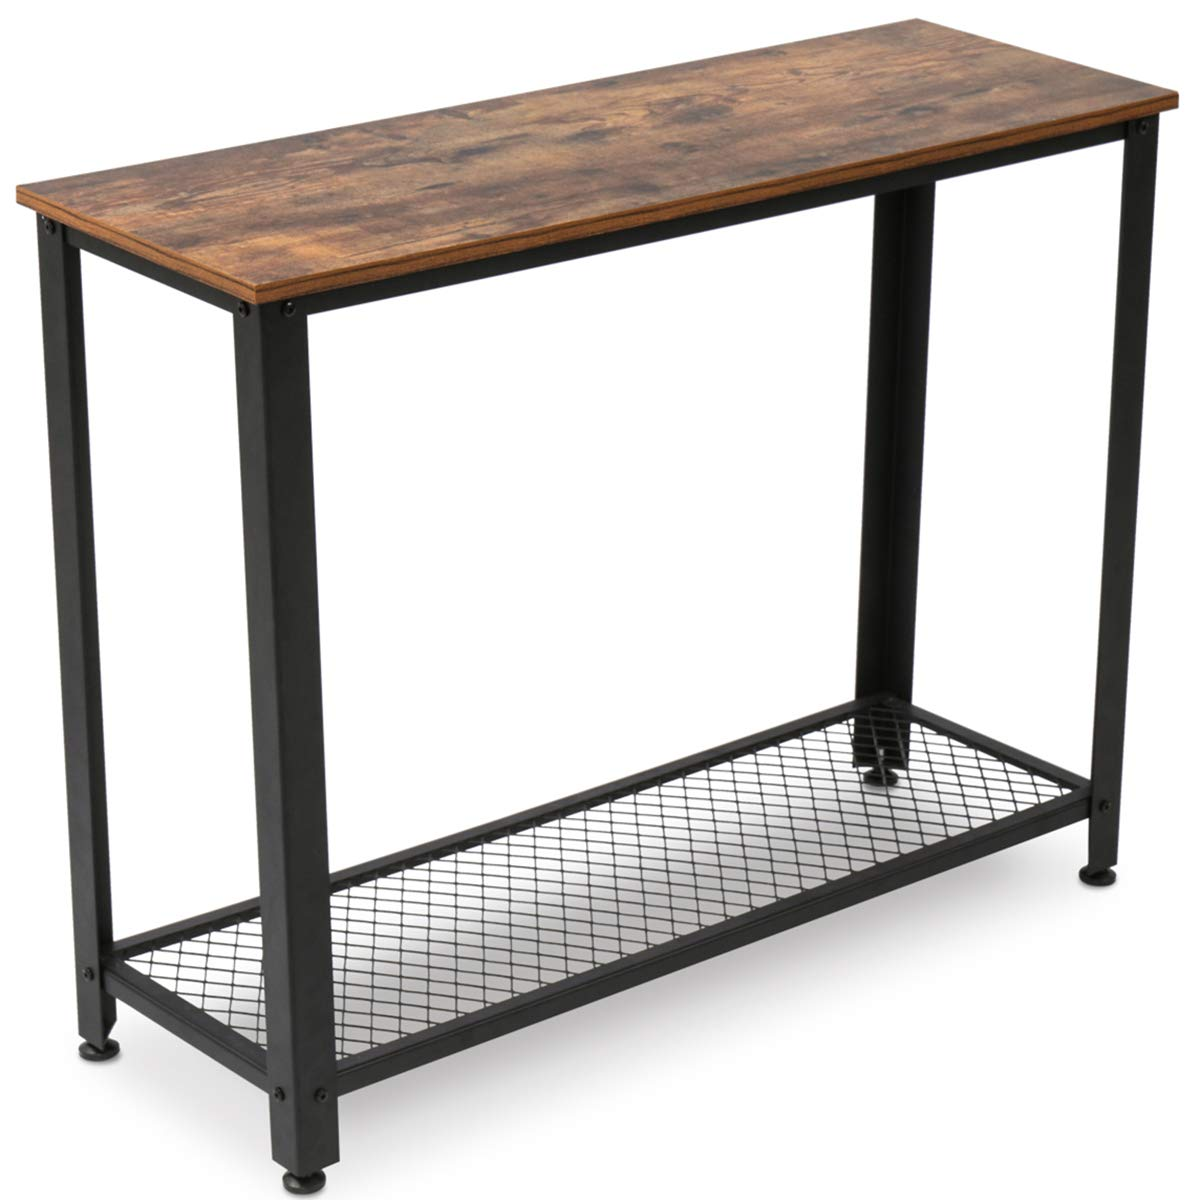 KingSo Industrial Sofa Table with Shelf, Vintage Rustic Console Side Table for Living Room Bedroom Entryway Study Balcony Hallway Workshop, Easy Assembly by KINGSO